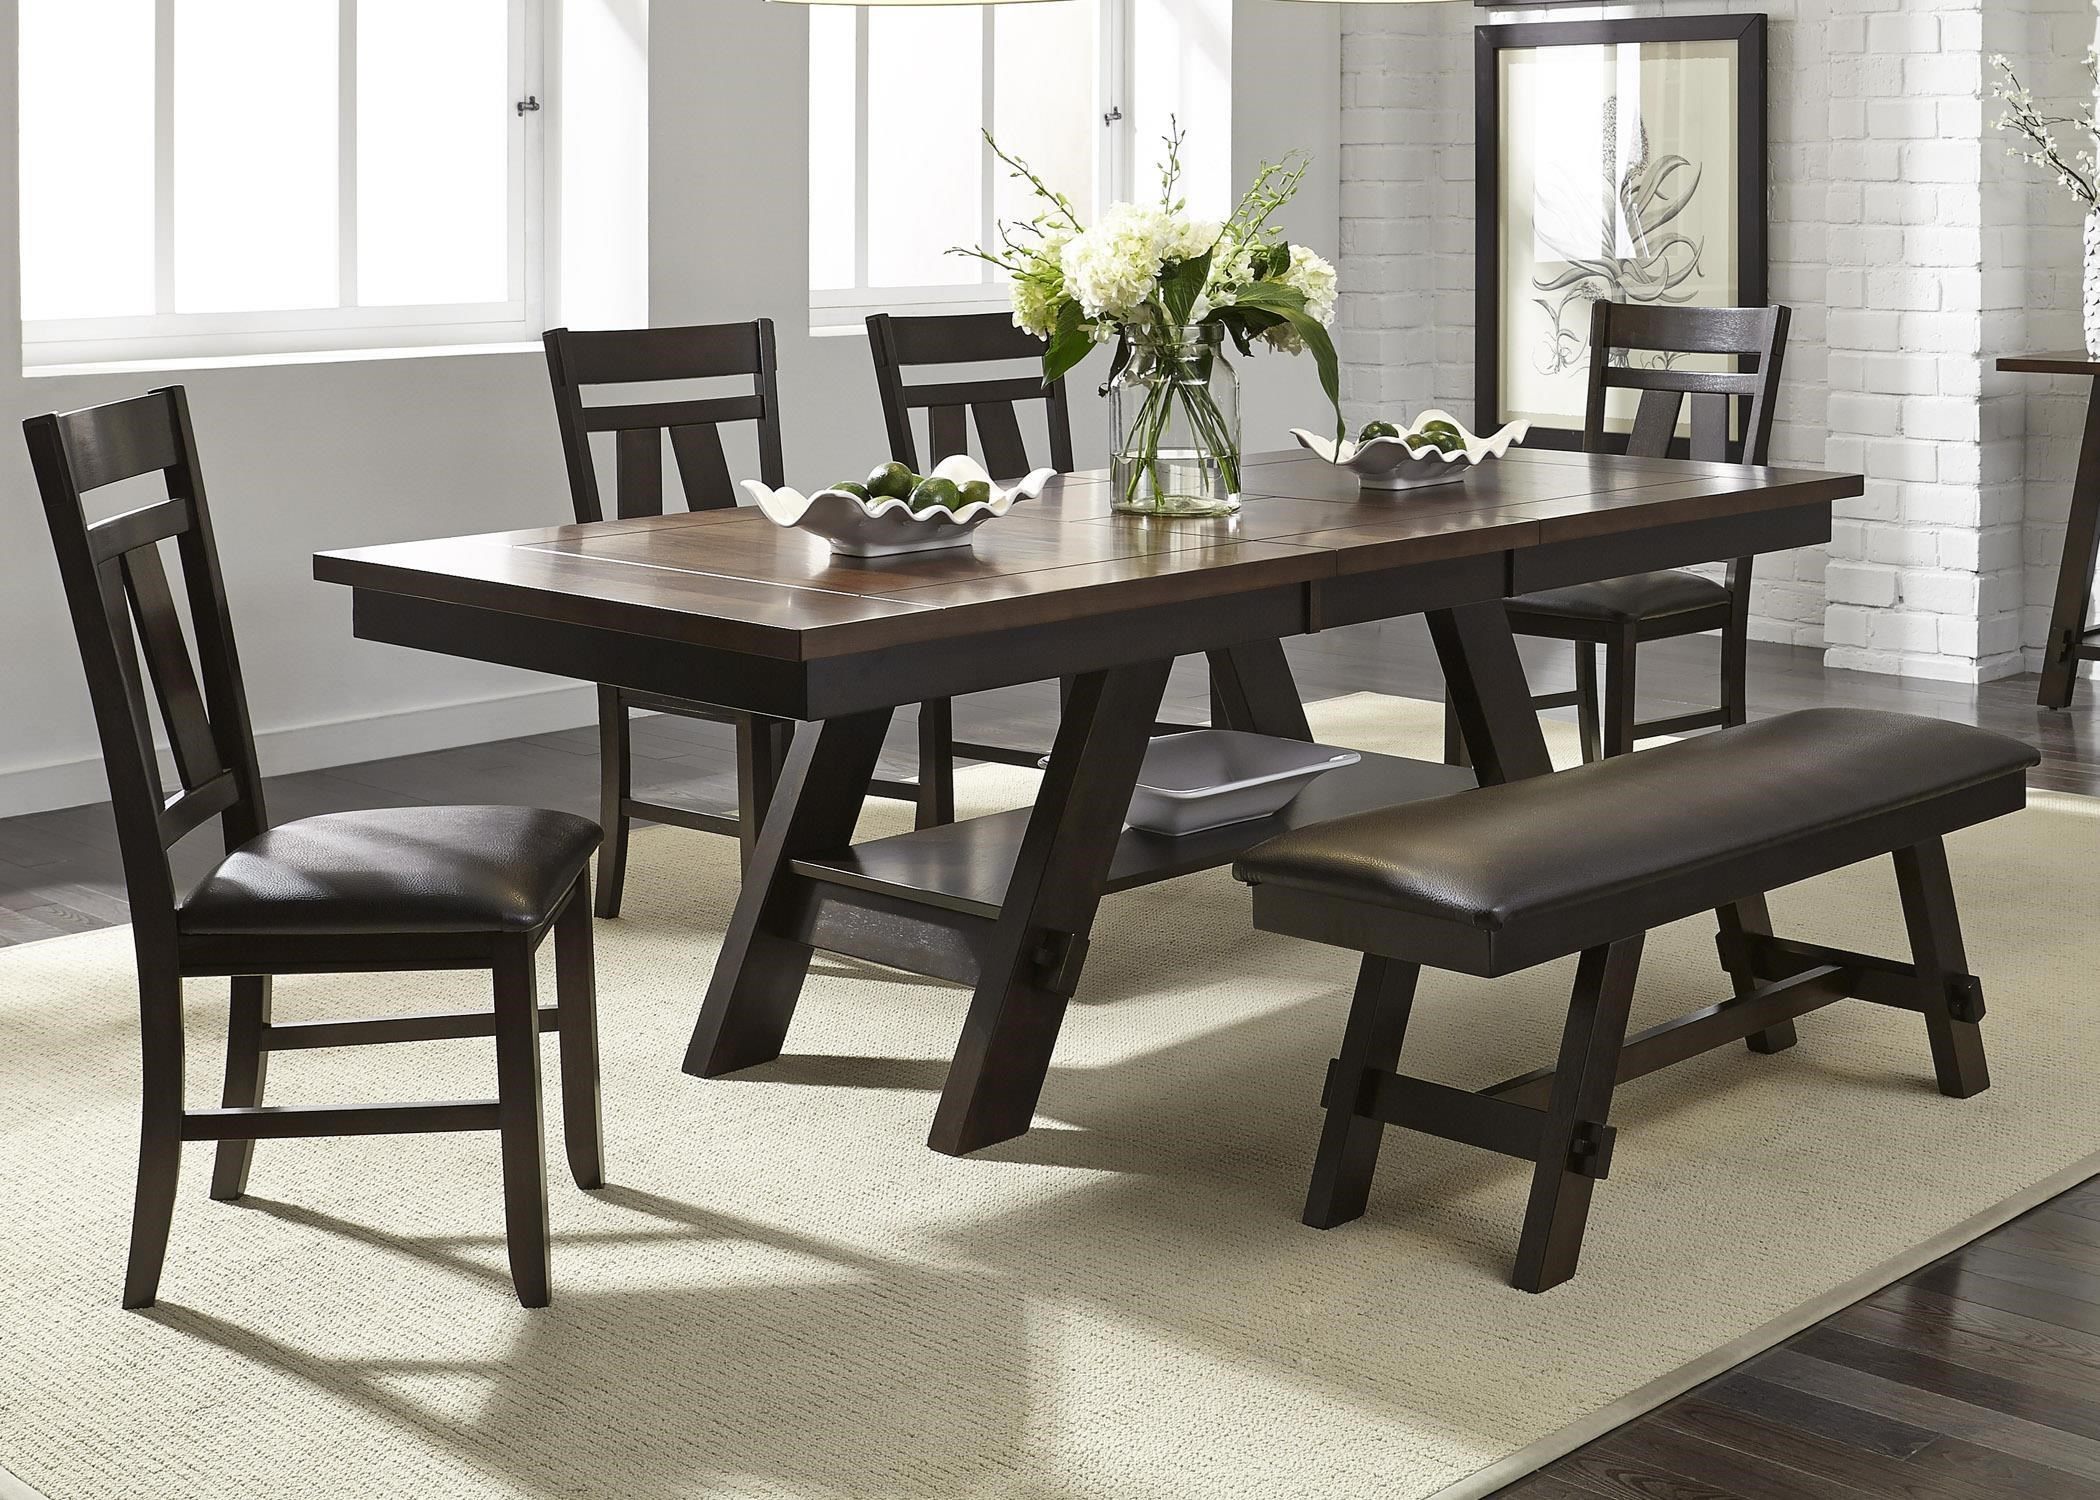 Lawson 5 Piece Dining Set Includes Table and 4 Side Chairs by Liberty  Furniture at Darvin Furniture